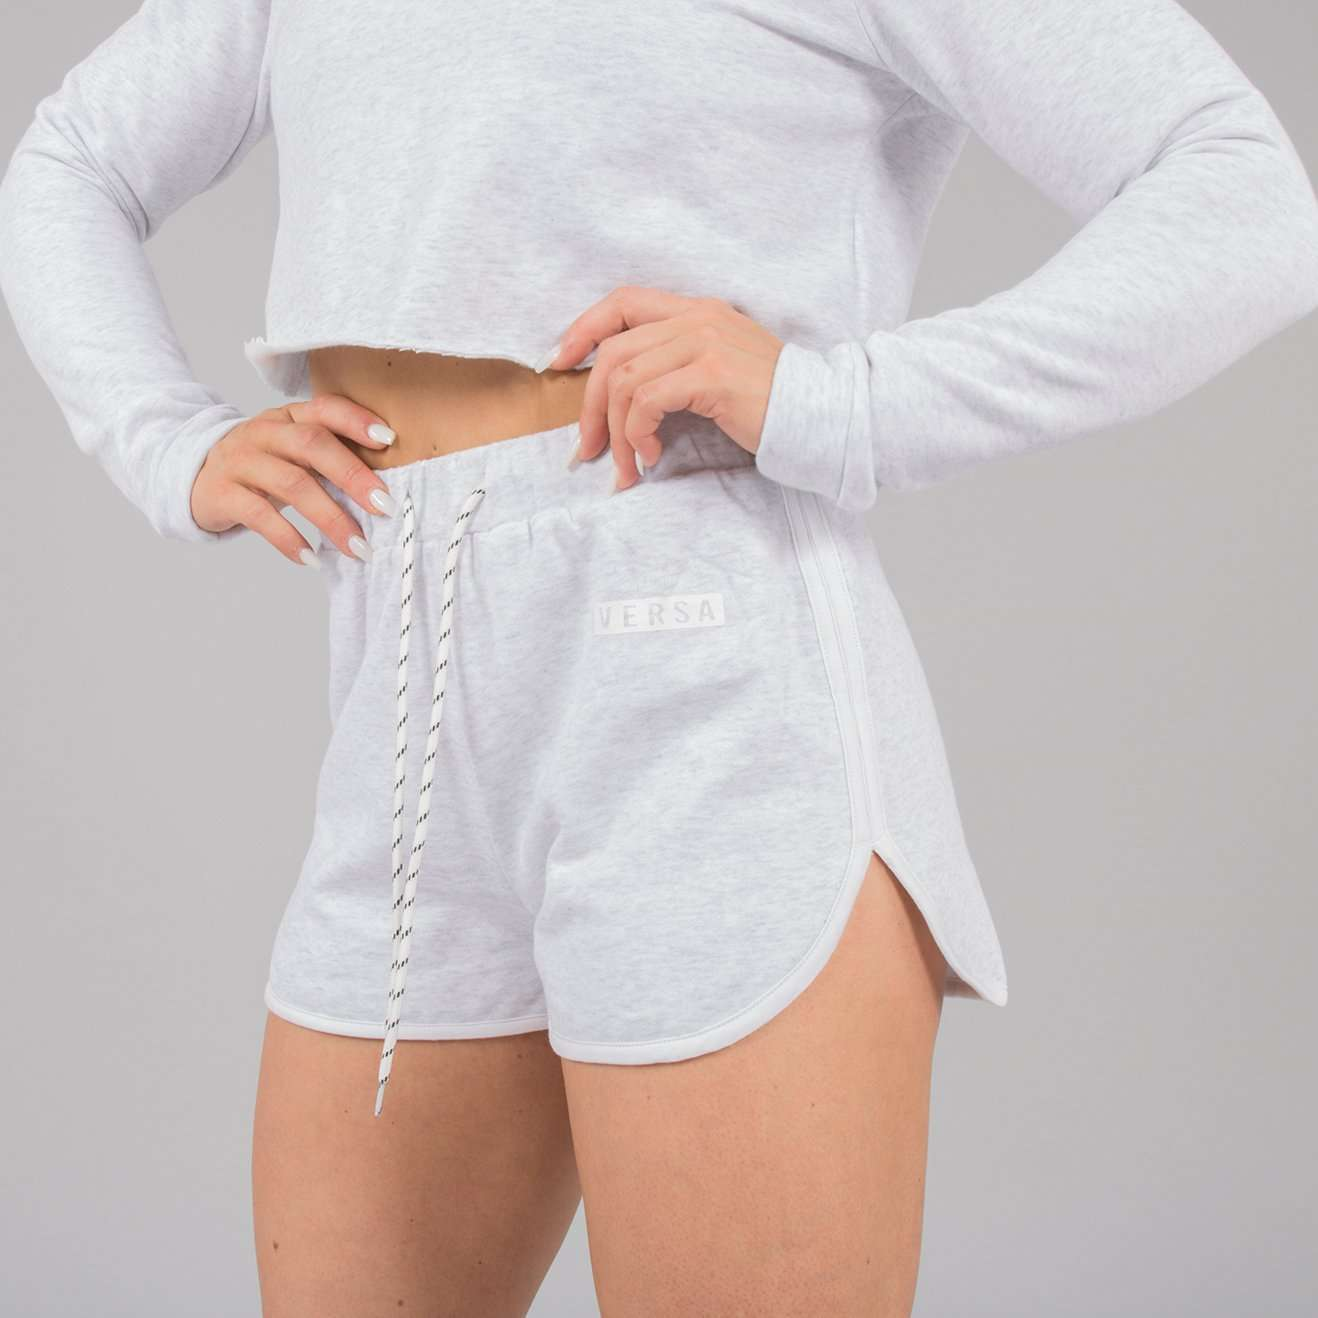 Versa Forma | Nao Shorts - White Heather